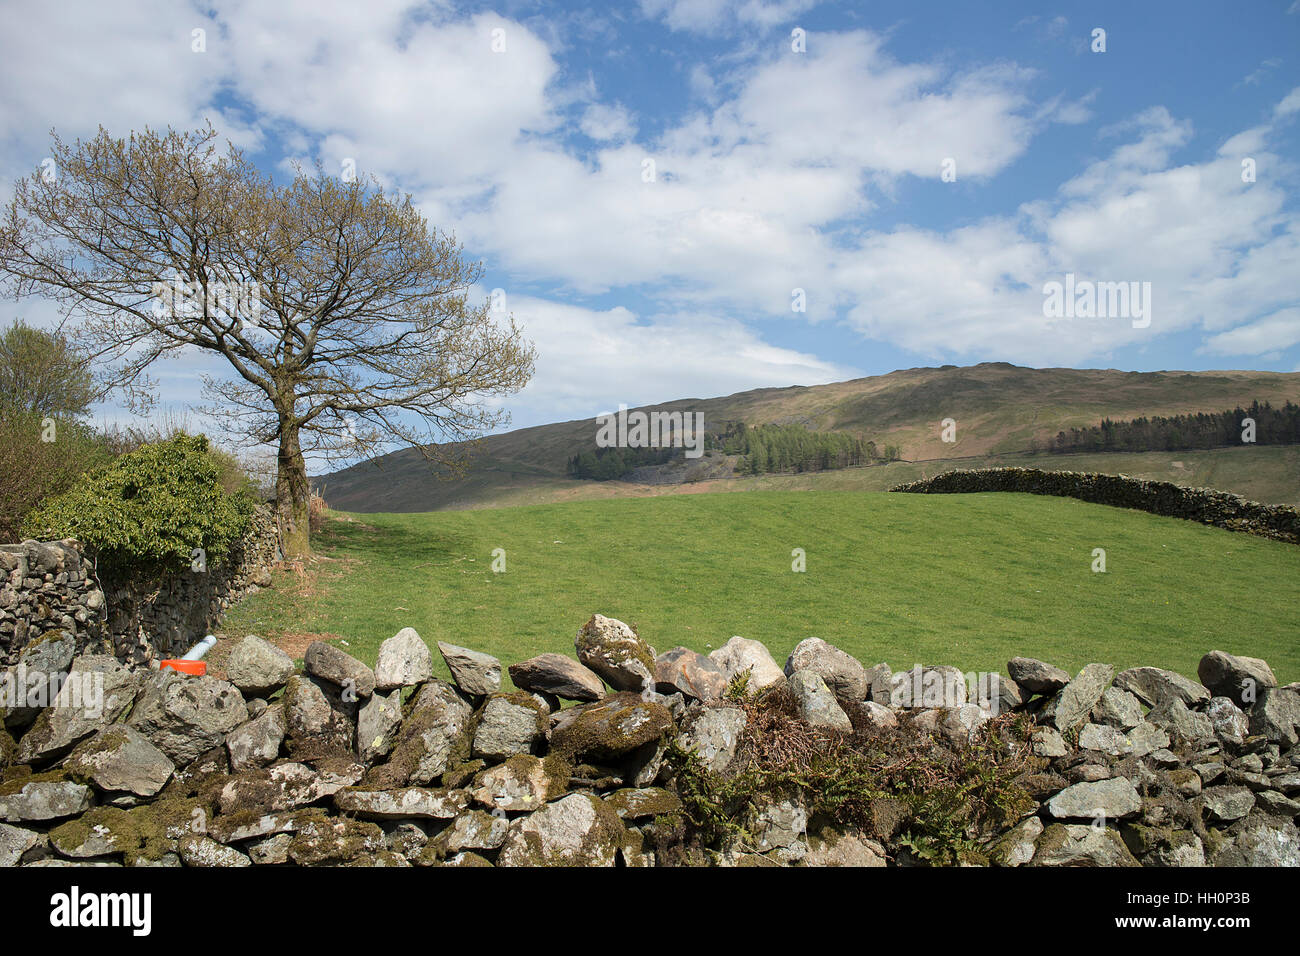 Dry stone wall, meadow and fells, Troutbeck, near Windermere, Lake District, Cumbria - Stock Image